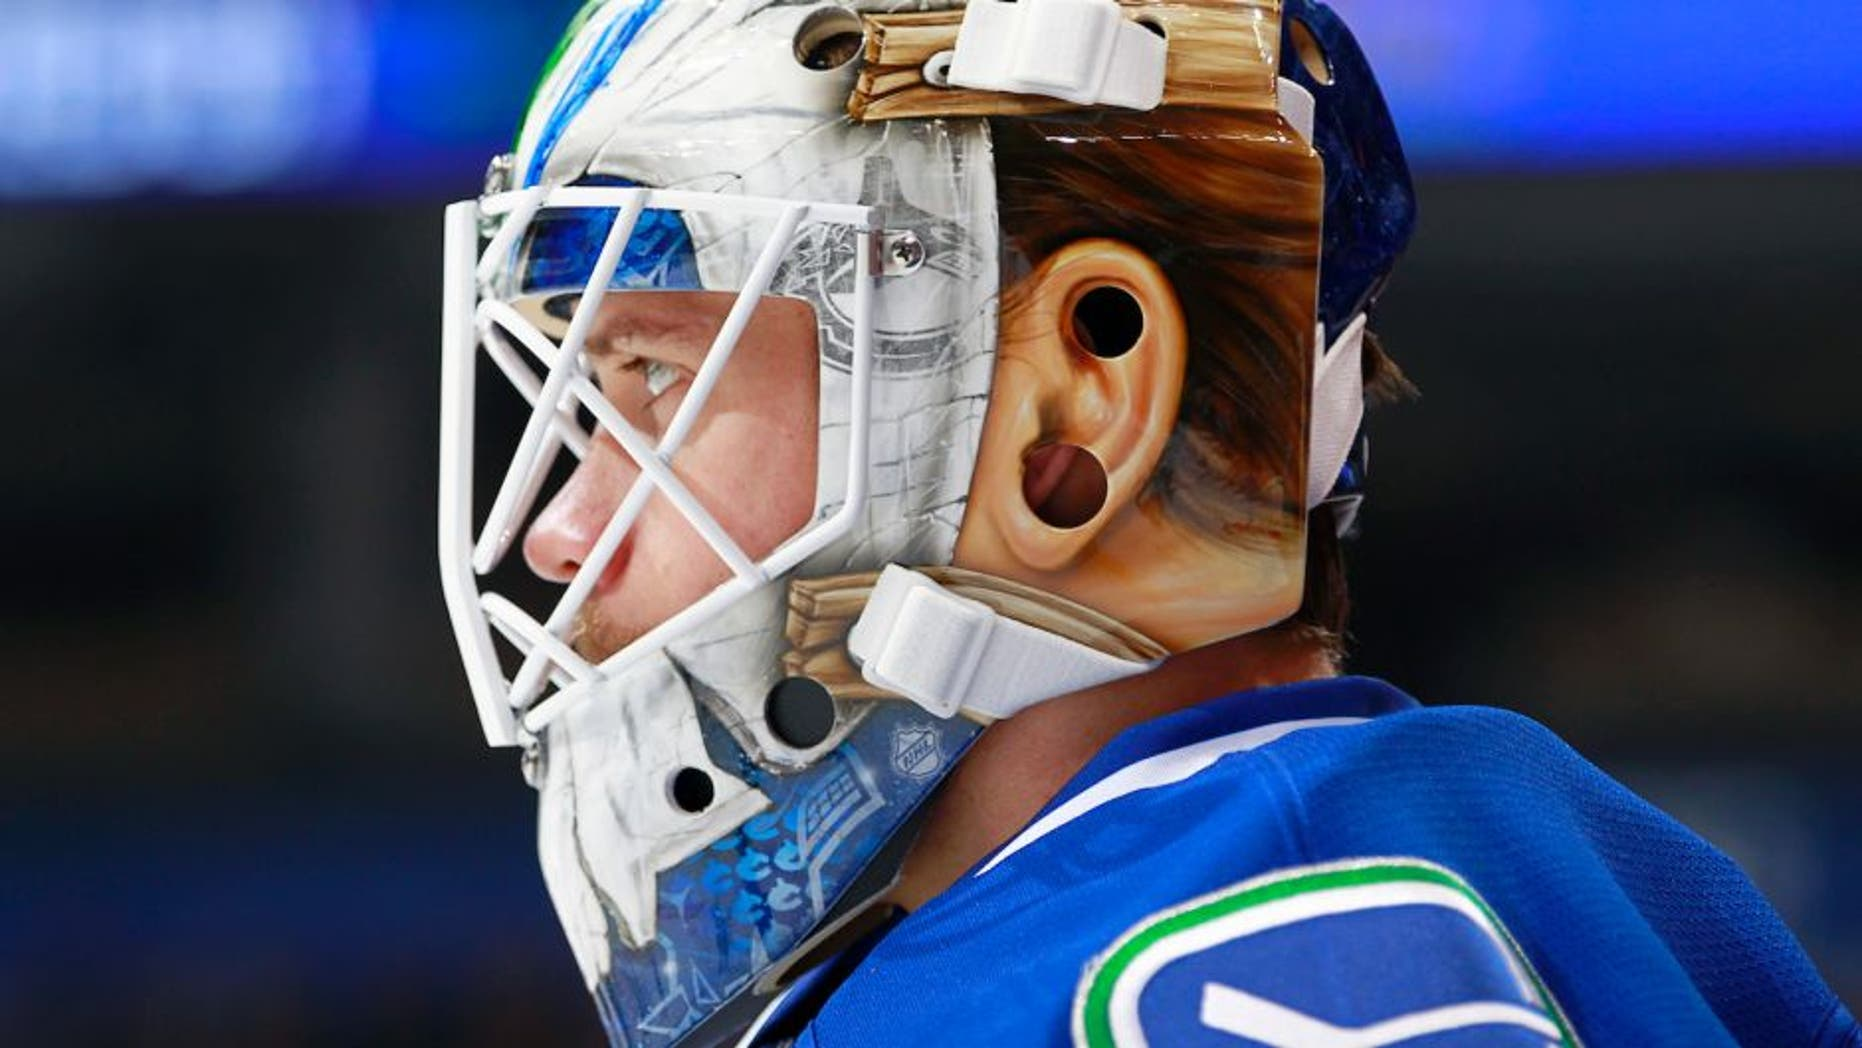 VANCOUVER, BC - NOVEMBER 13: Jacob Markstrom #25 of the Vancouver Canucks dons a new mask during warmup before their NHL game against the Dallas Stars at Rogers Arena November 13, 2016 in Vancouver, British Columbia, Canada. (Photo by Jeff Vinnick/NHLI via Getty Images)